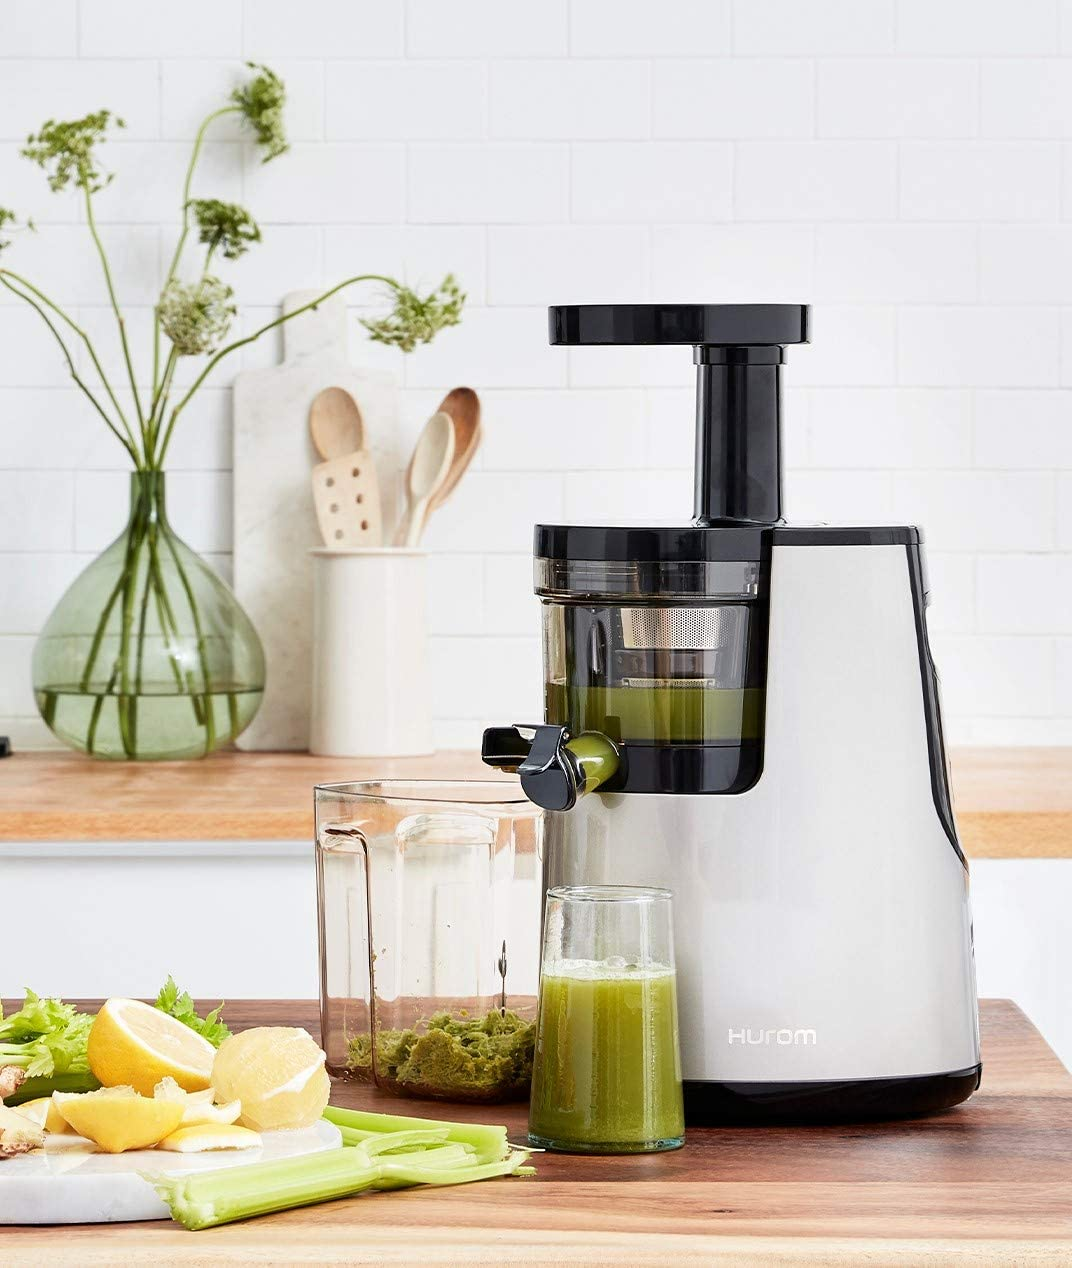 The Best Hurom Juicer